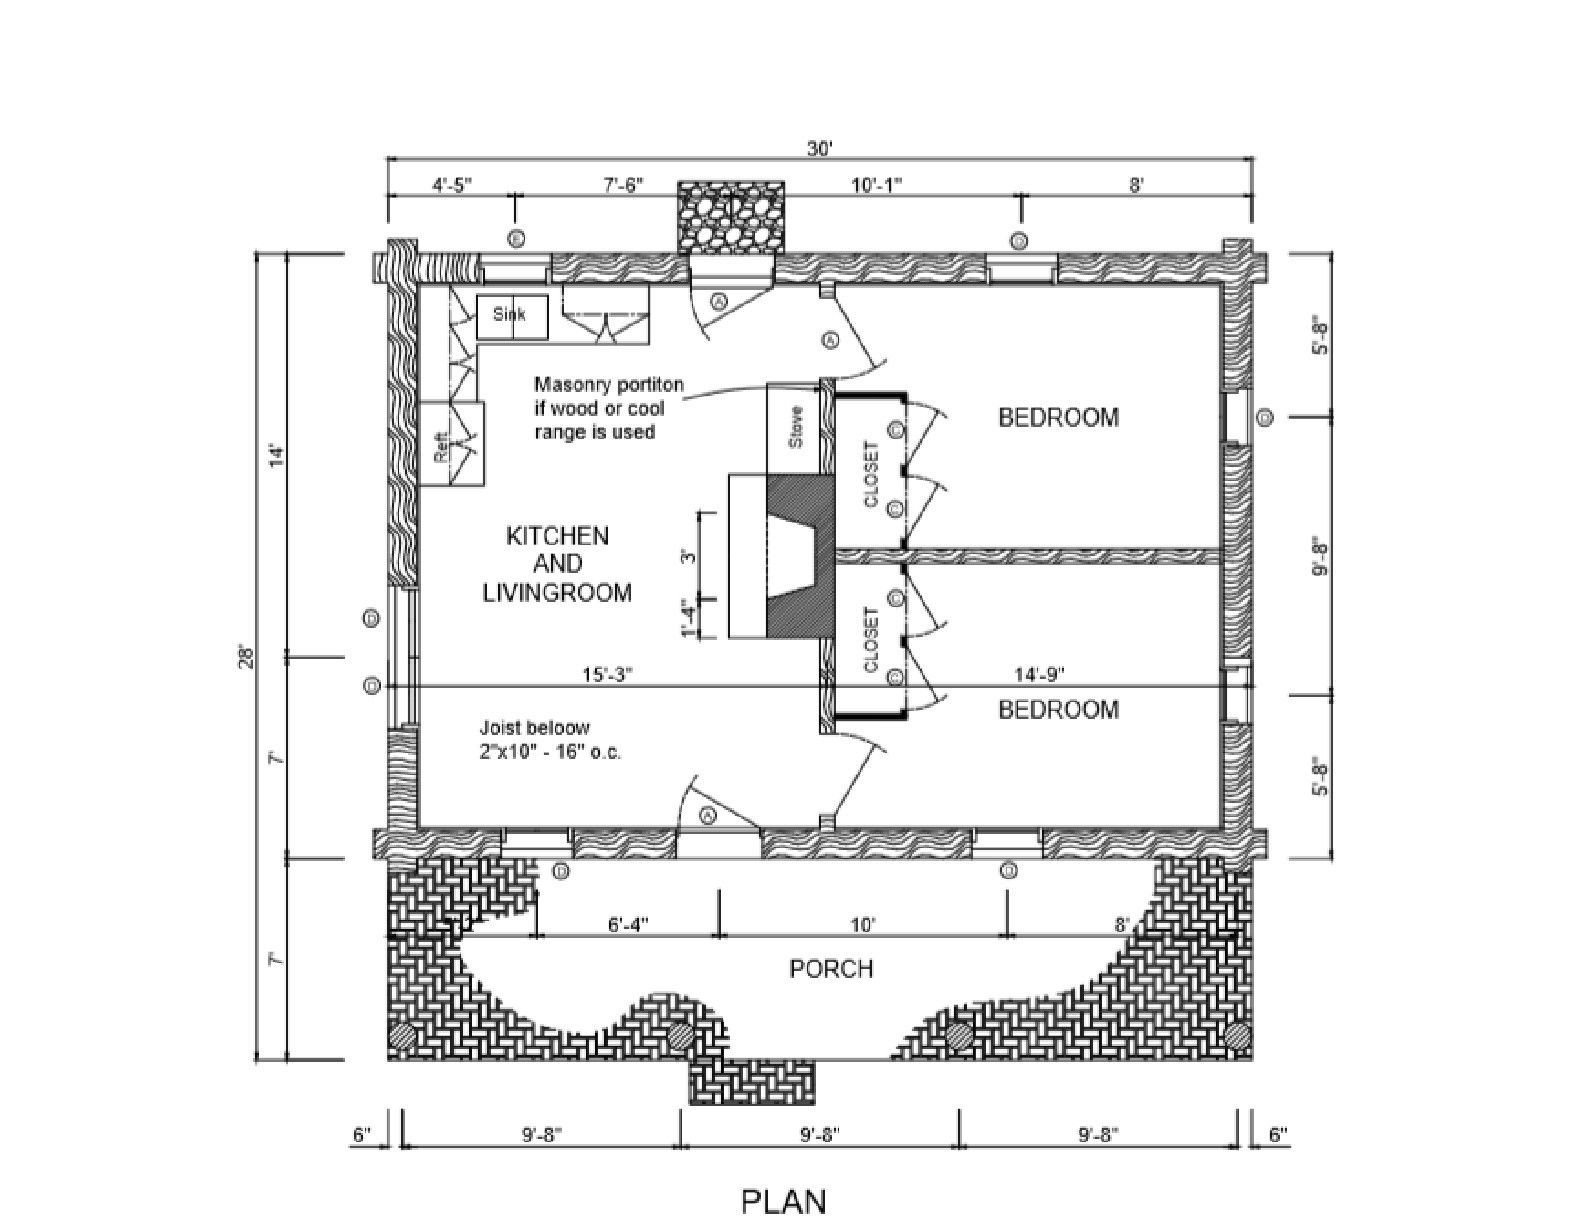 Log Cabin House Plans DIY 2 Bedroom Vacation Home 840 sq